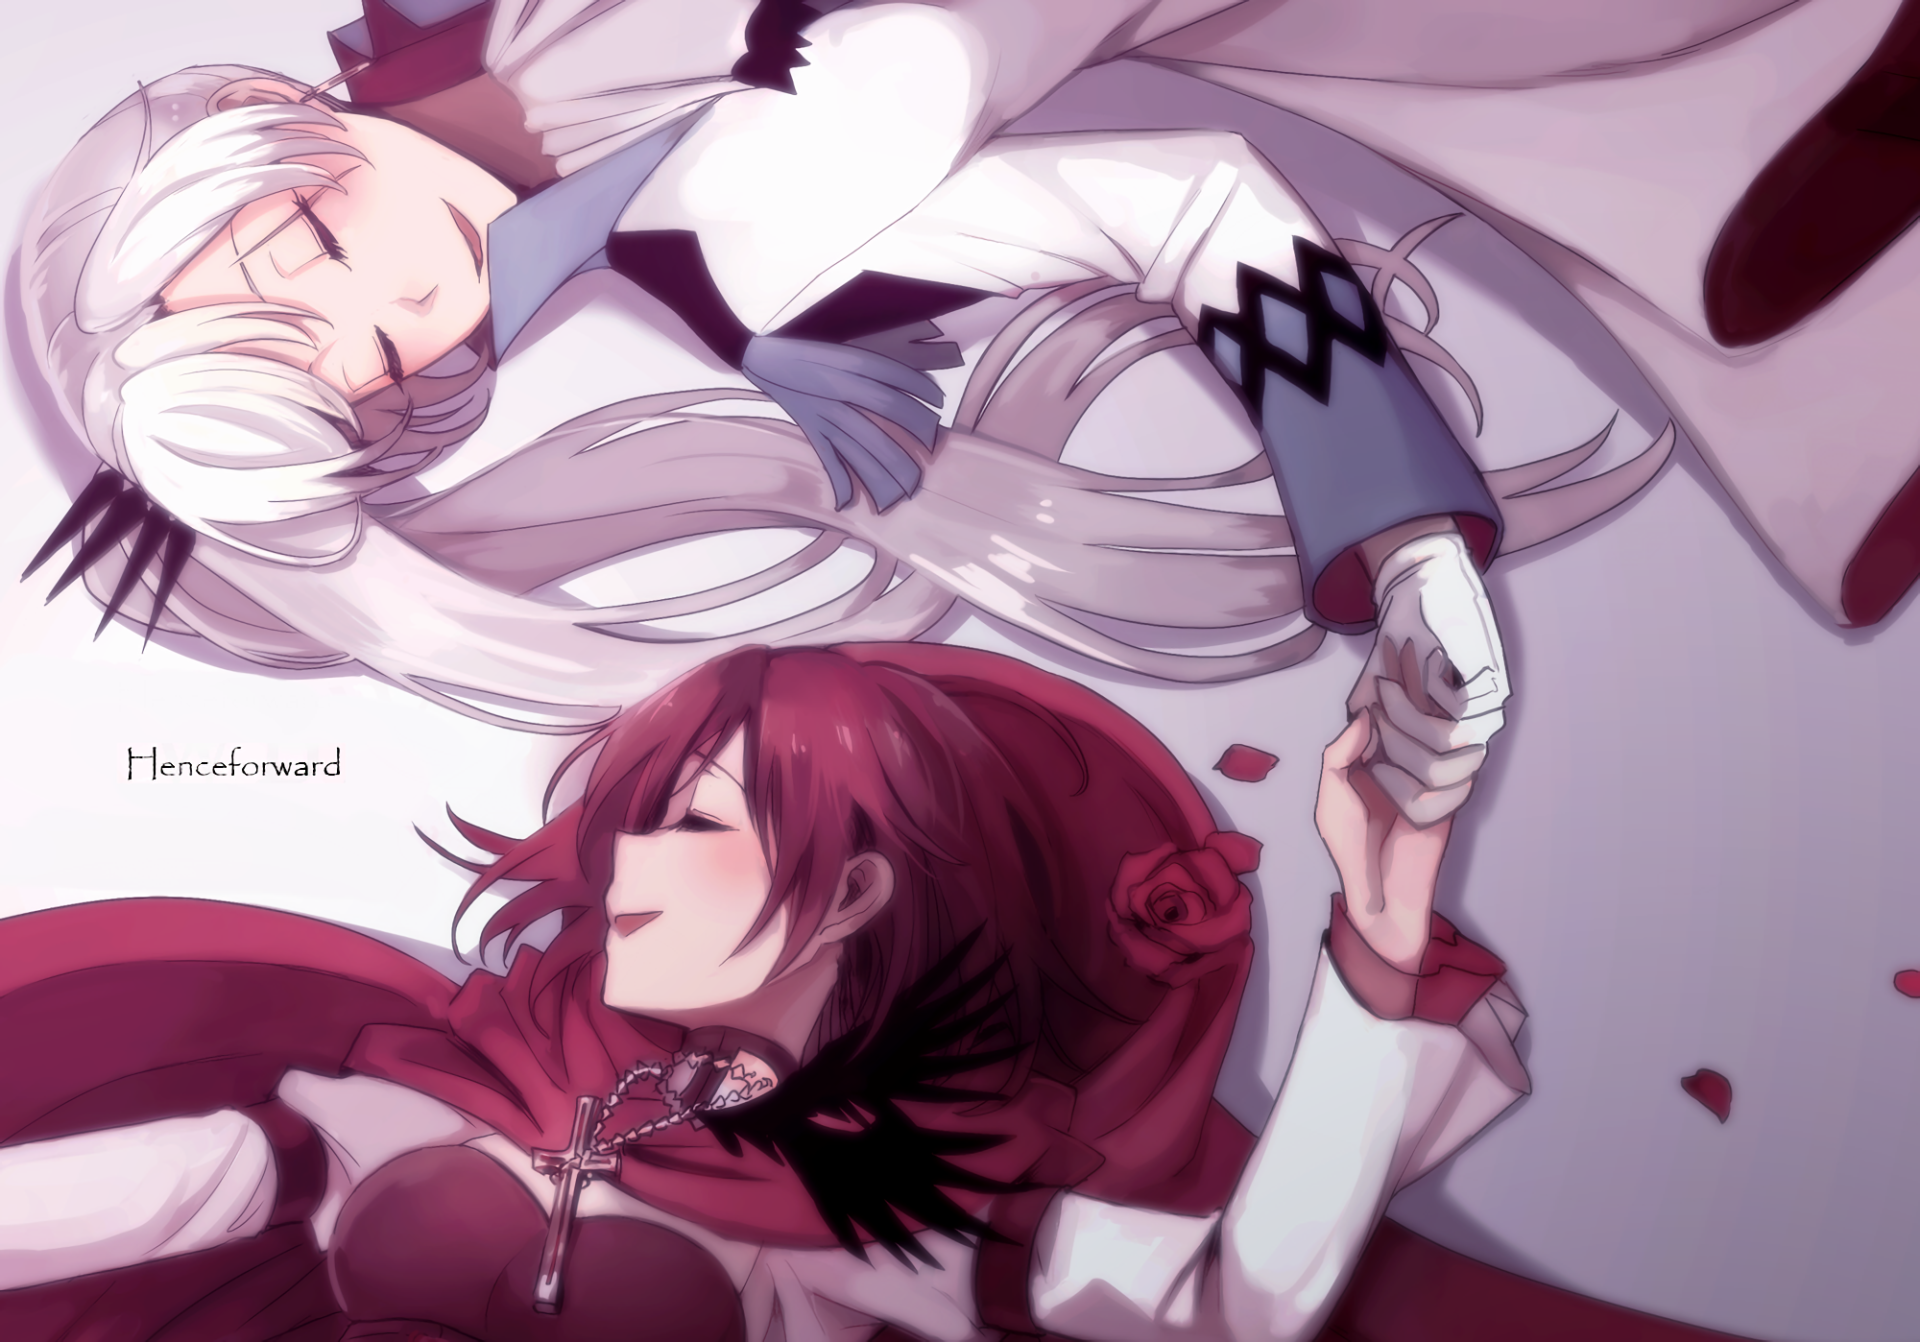 Anime Rwby Ruby Rose Rwby Weiss Schnee Wallpaper Art White